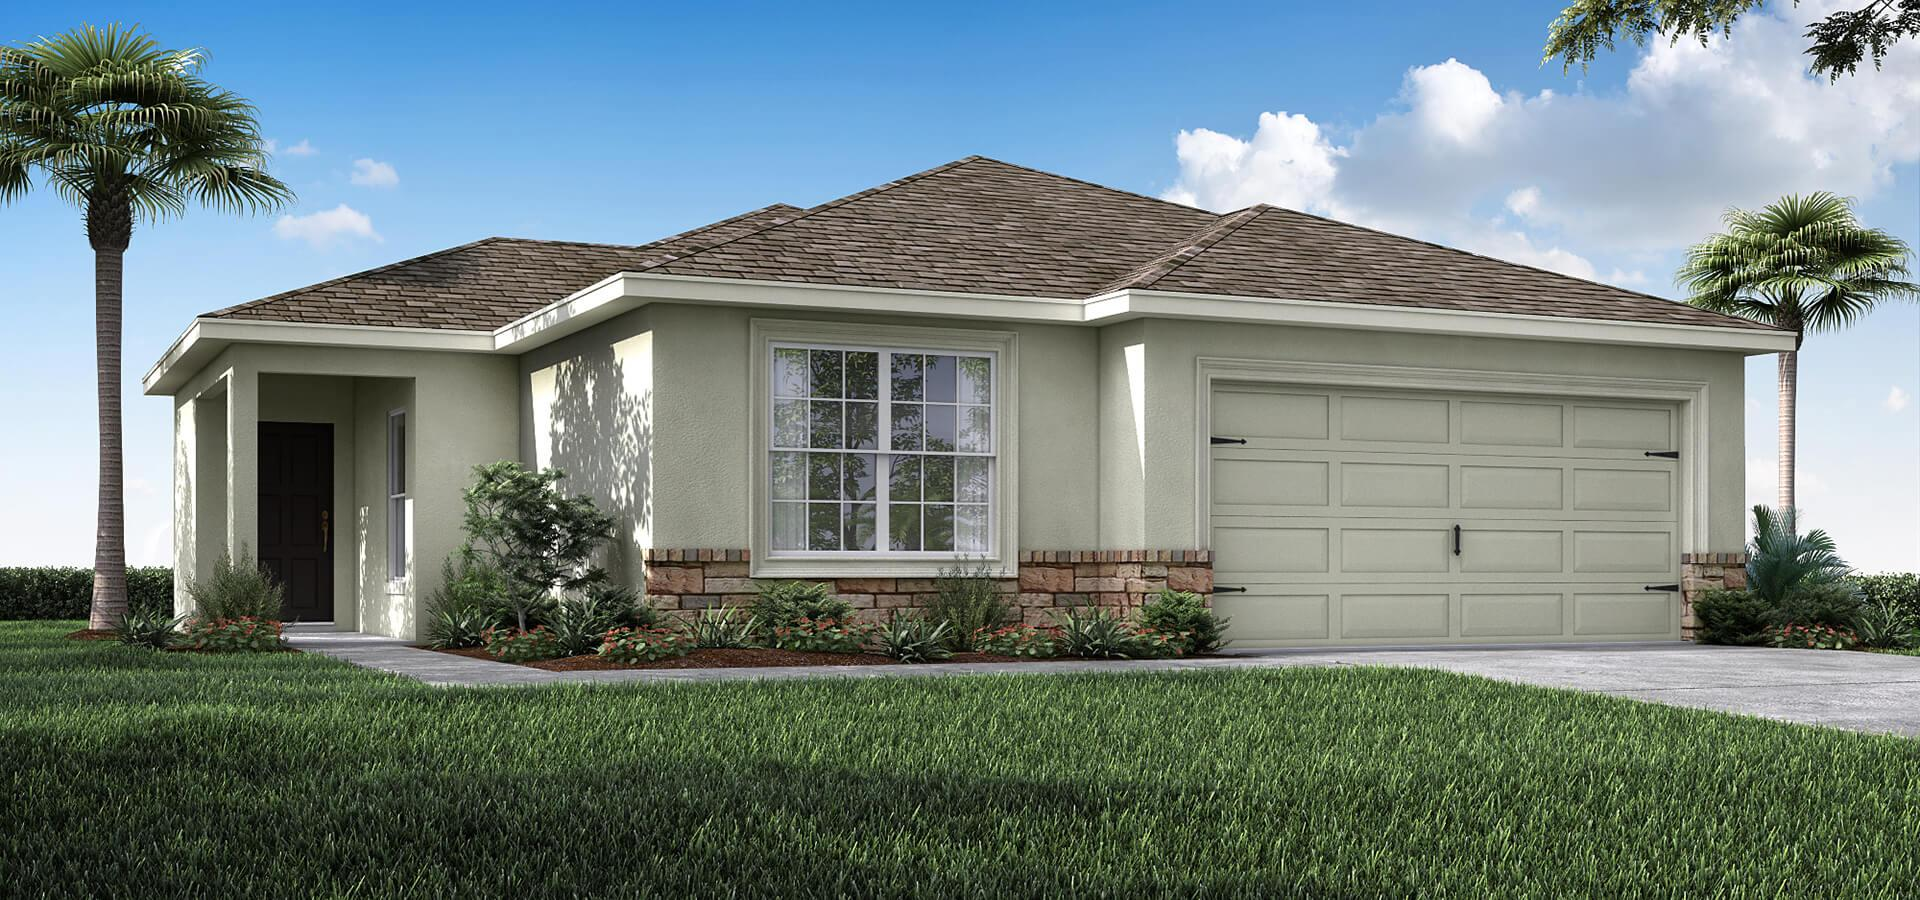 You are currently viewing Ridgewood West New Home Community Riverview Florida